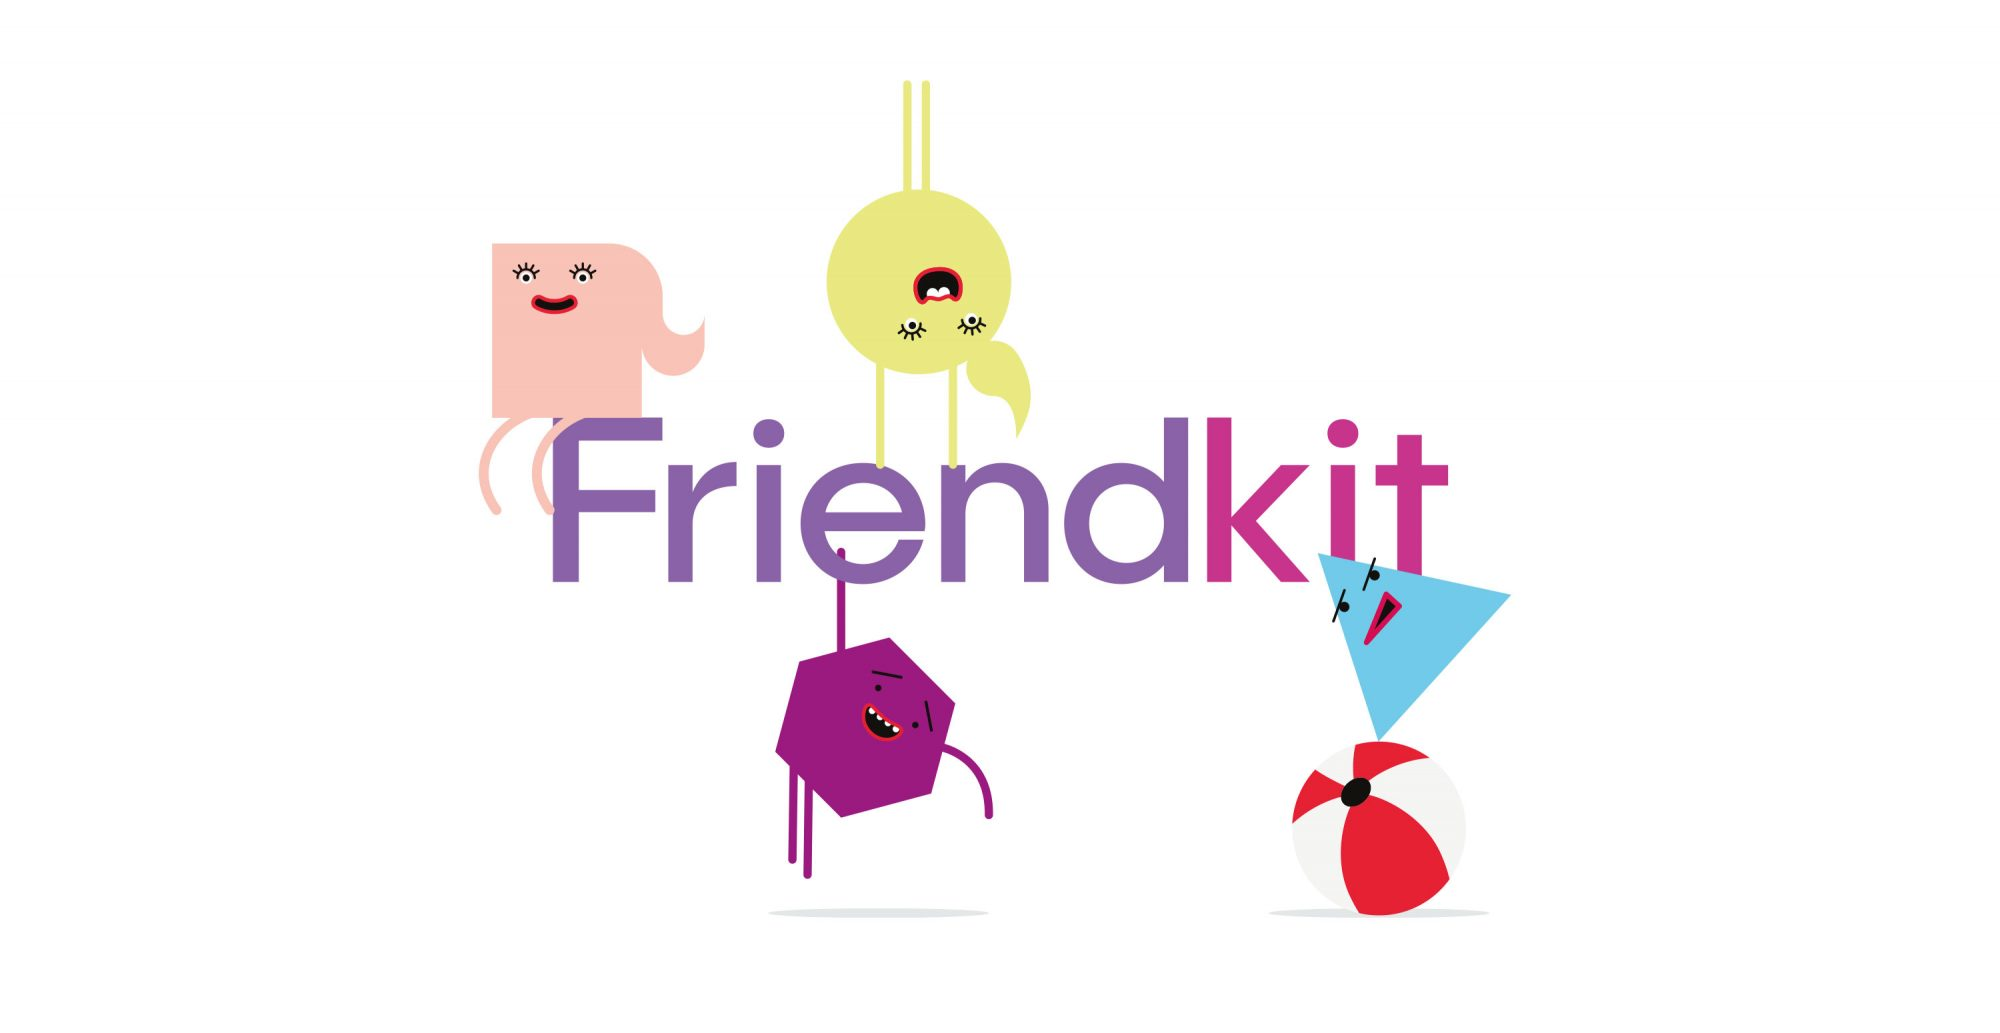 Friendkit